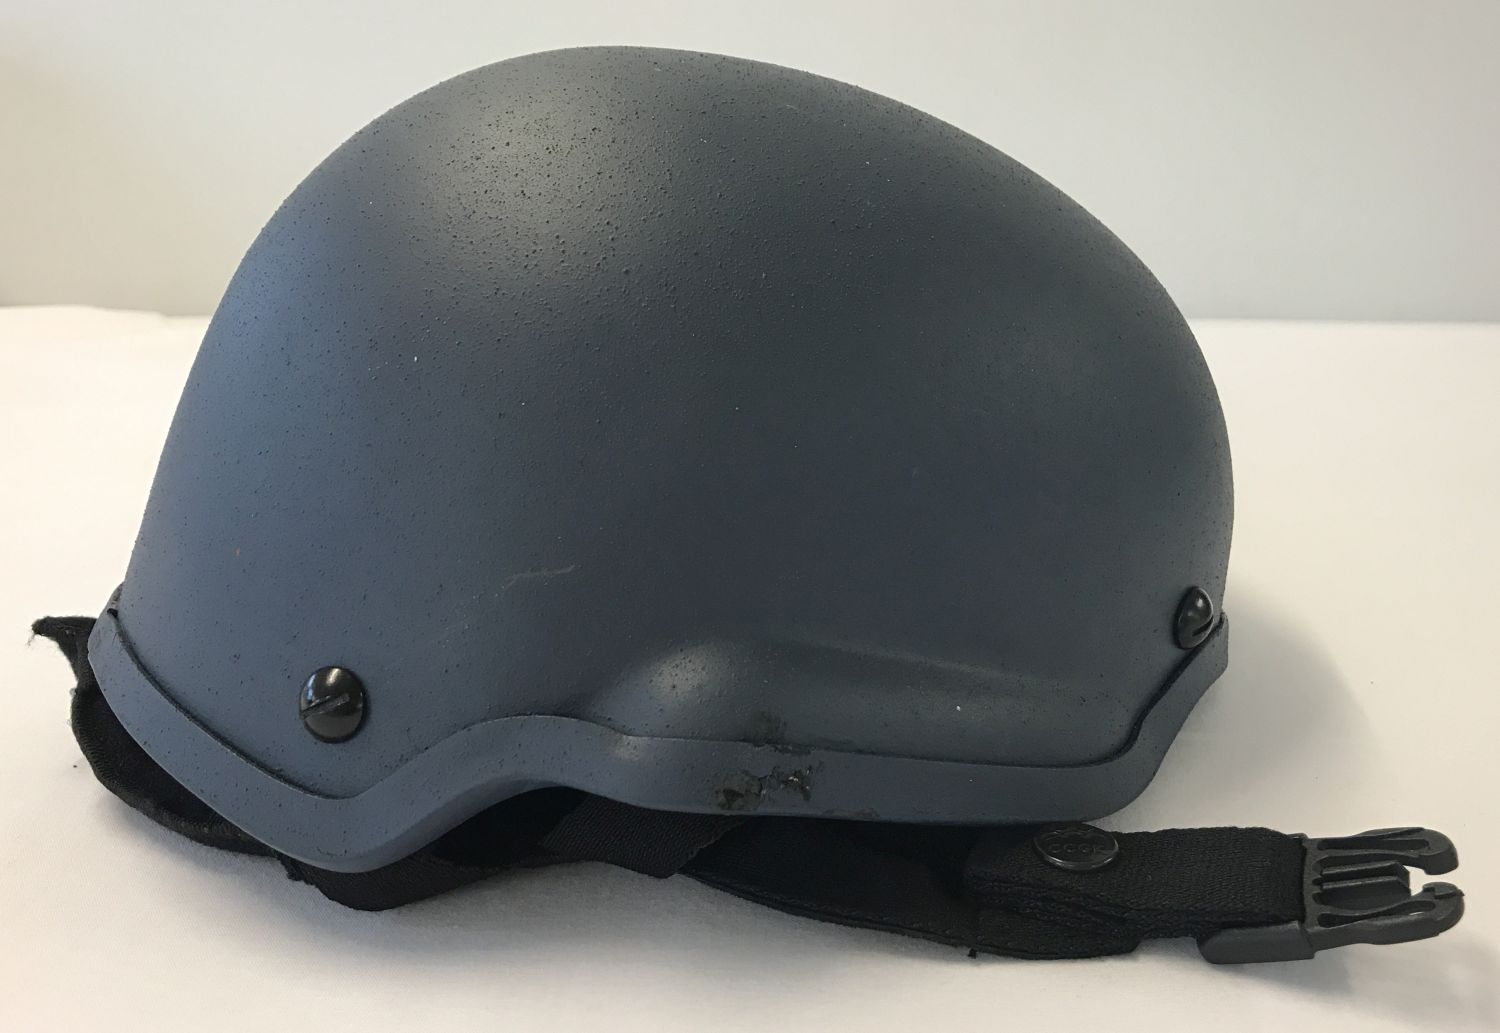 A Chinese made TC200A Anti-Terrorist or combat helmet.